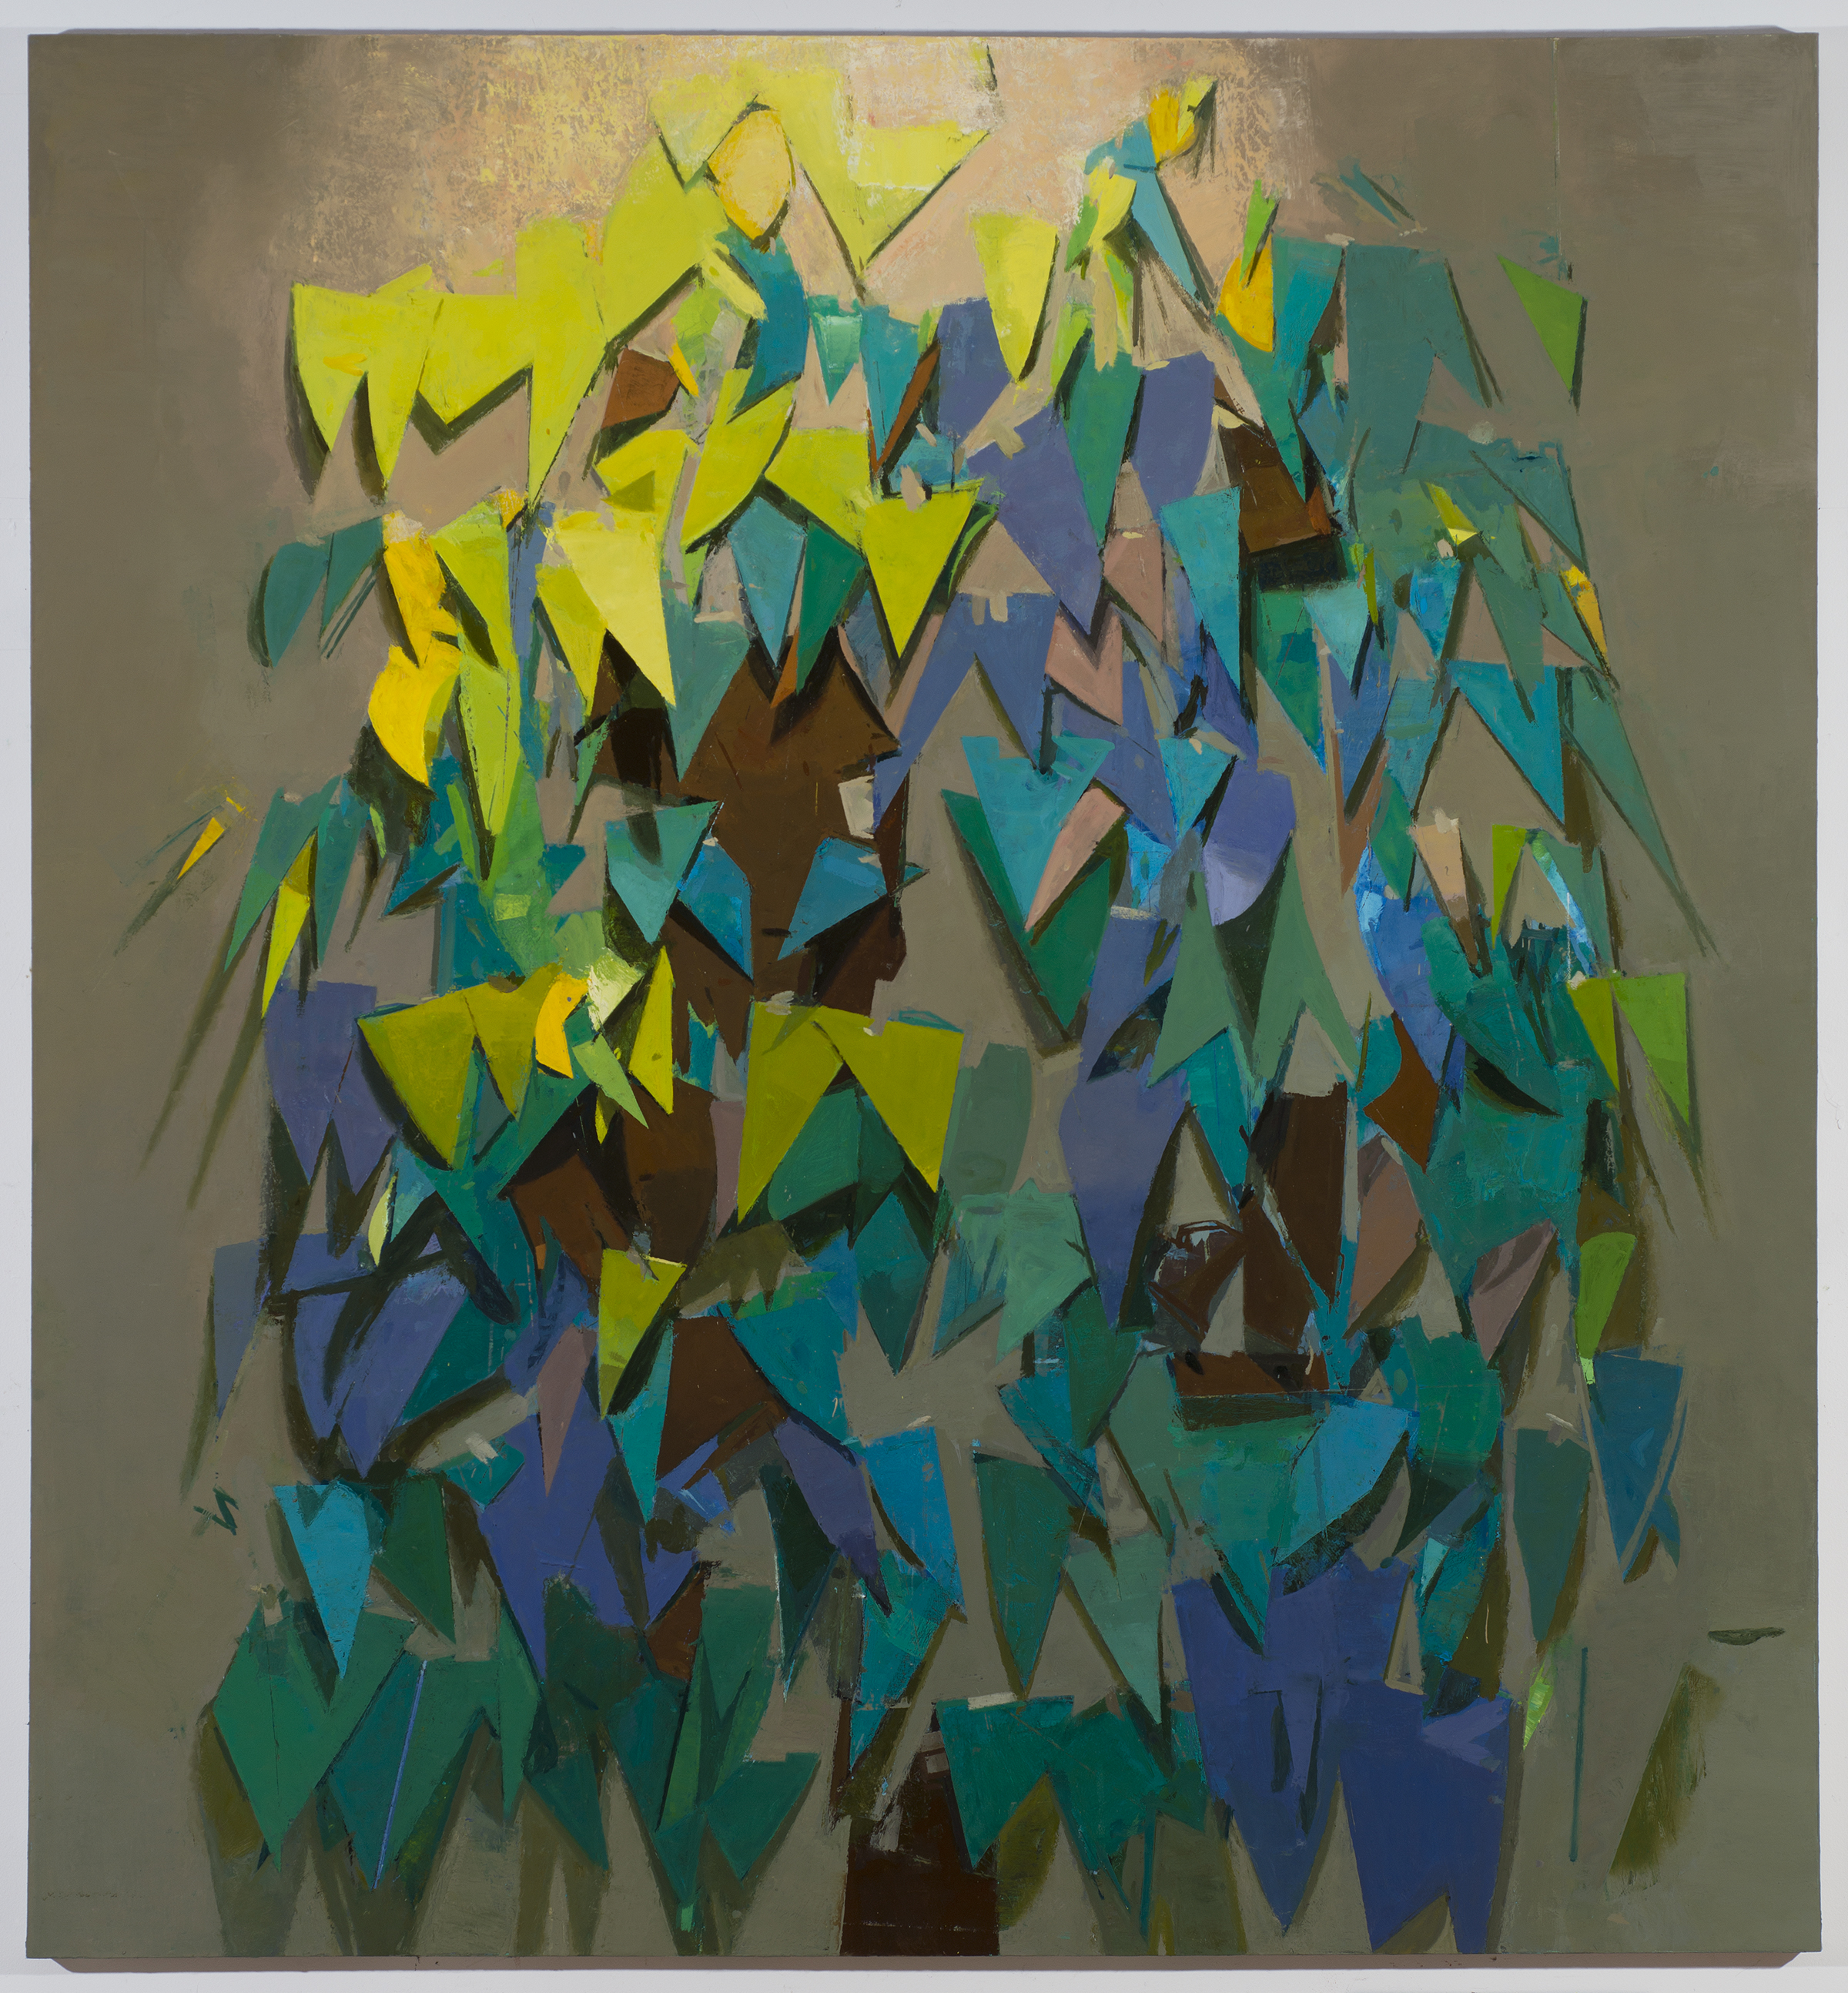 Sangram Majumdar,  paper tree , 2013, oil on linen, 72x66 in. Courtesy of the artist and Freight and Volume Gallery